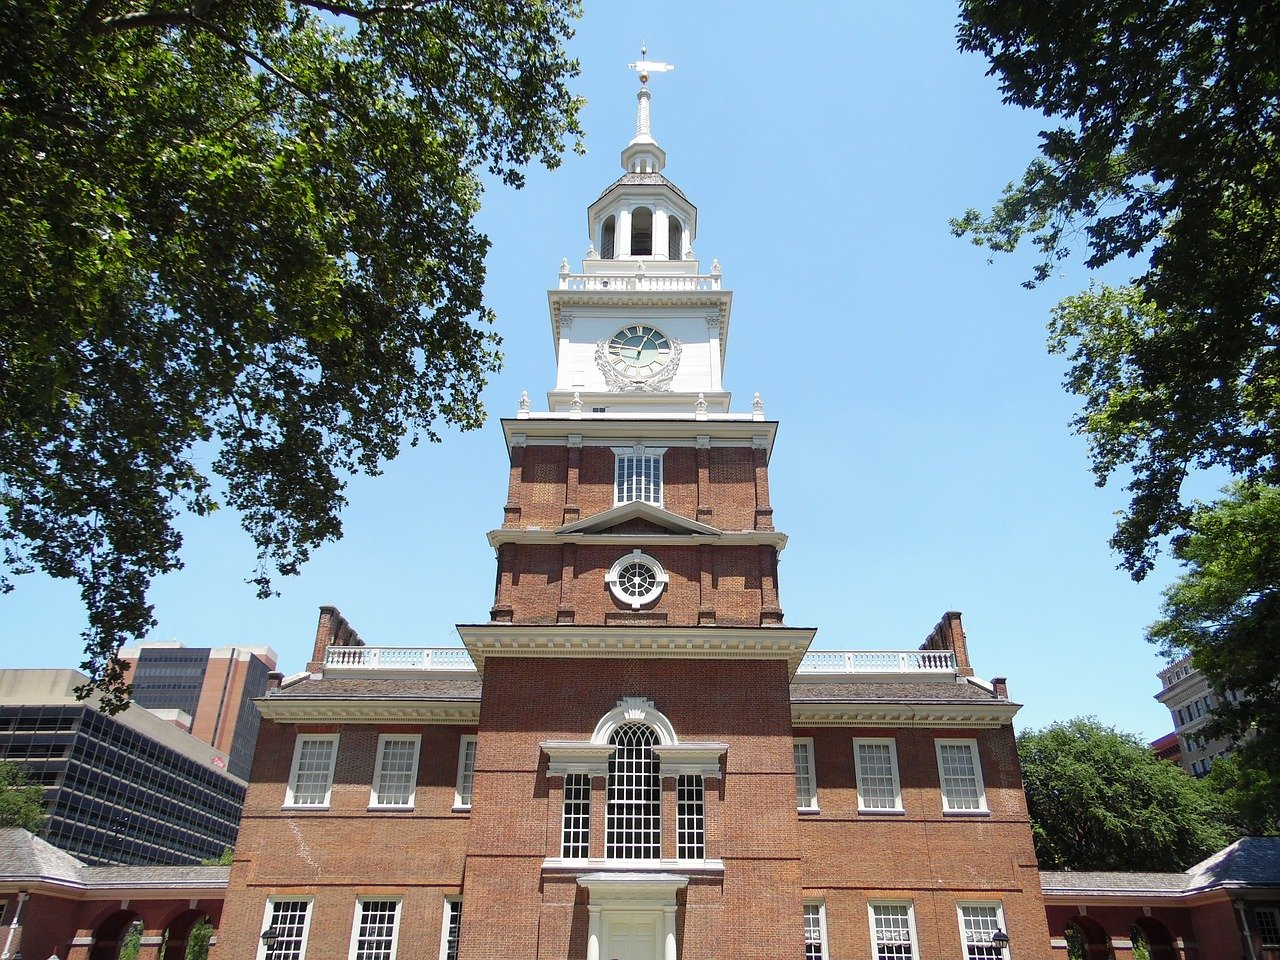 Top-Rated Tourist Attraction in Philadelphia-Independence Hall